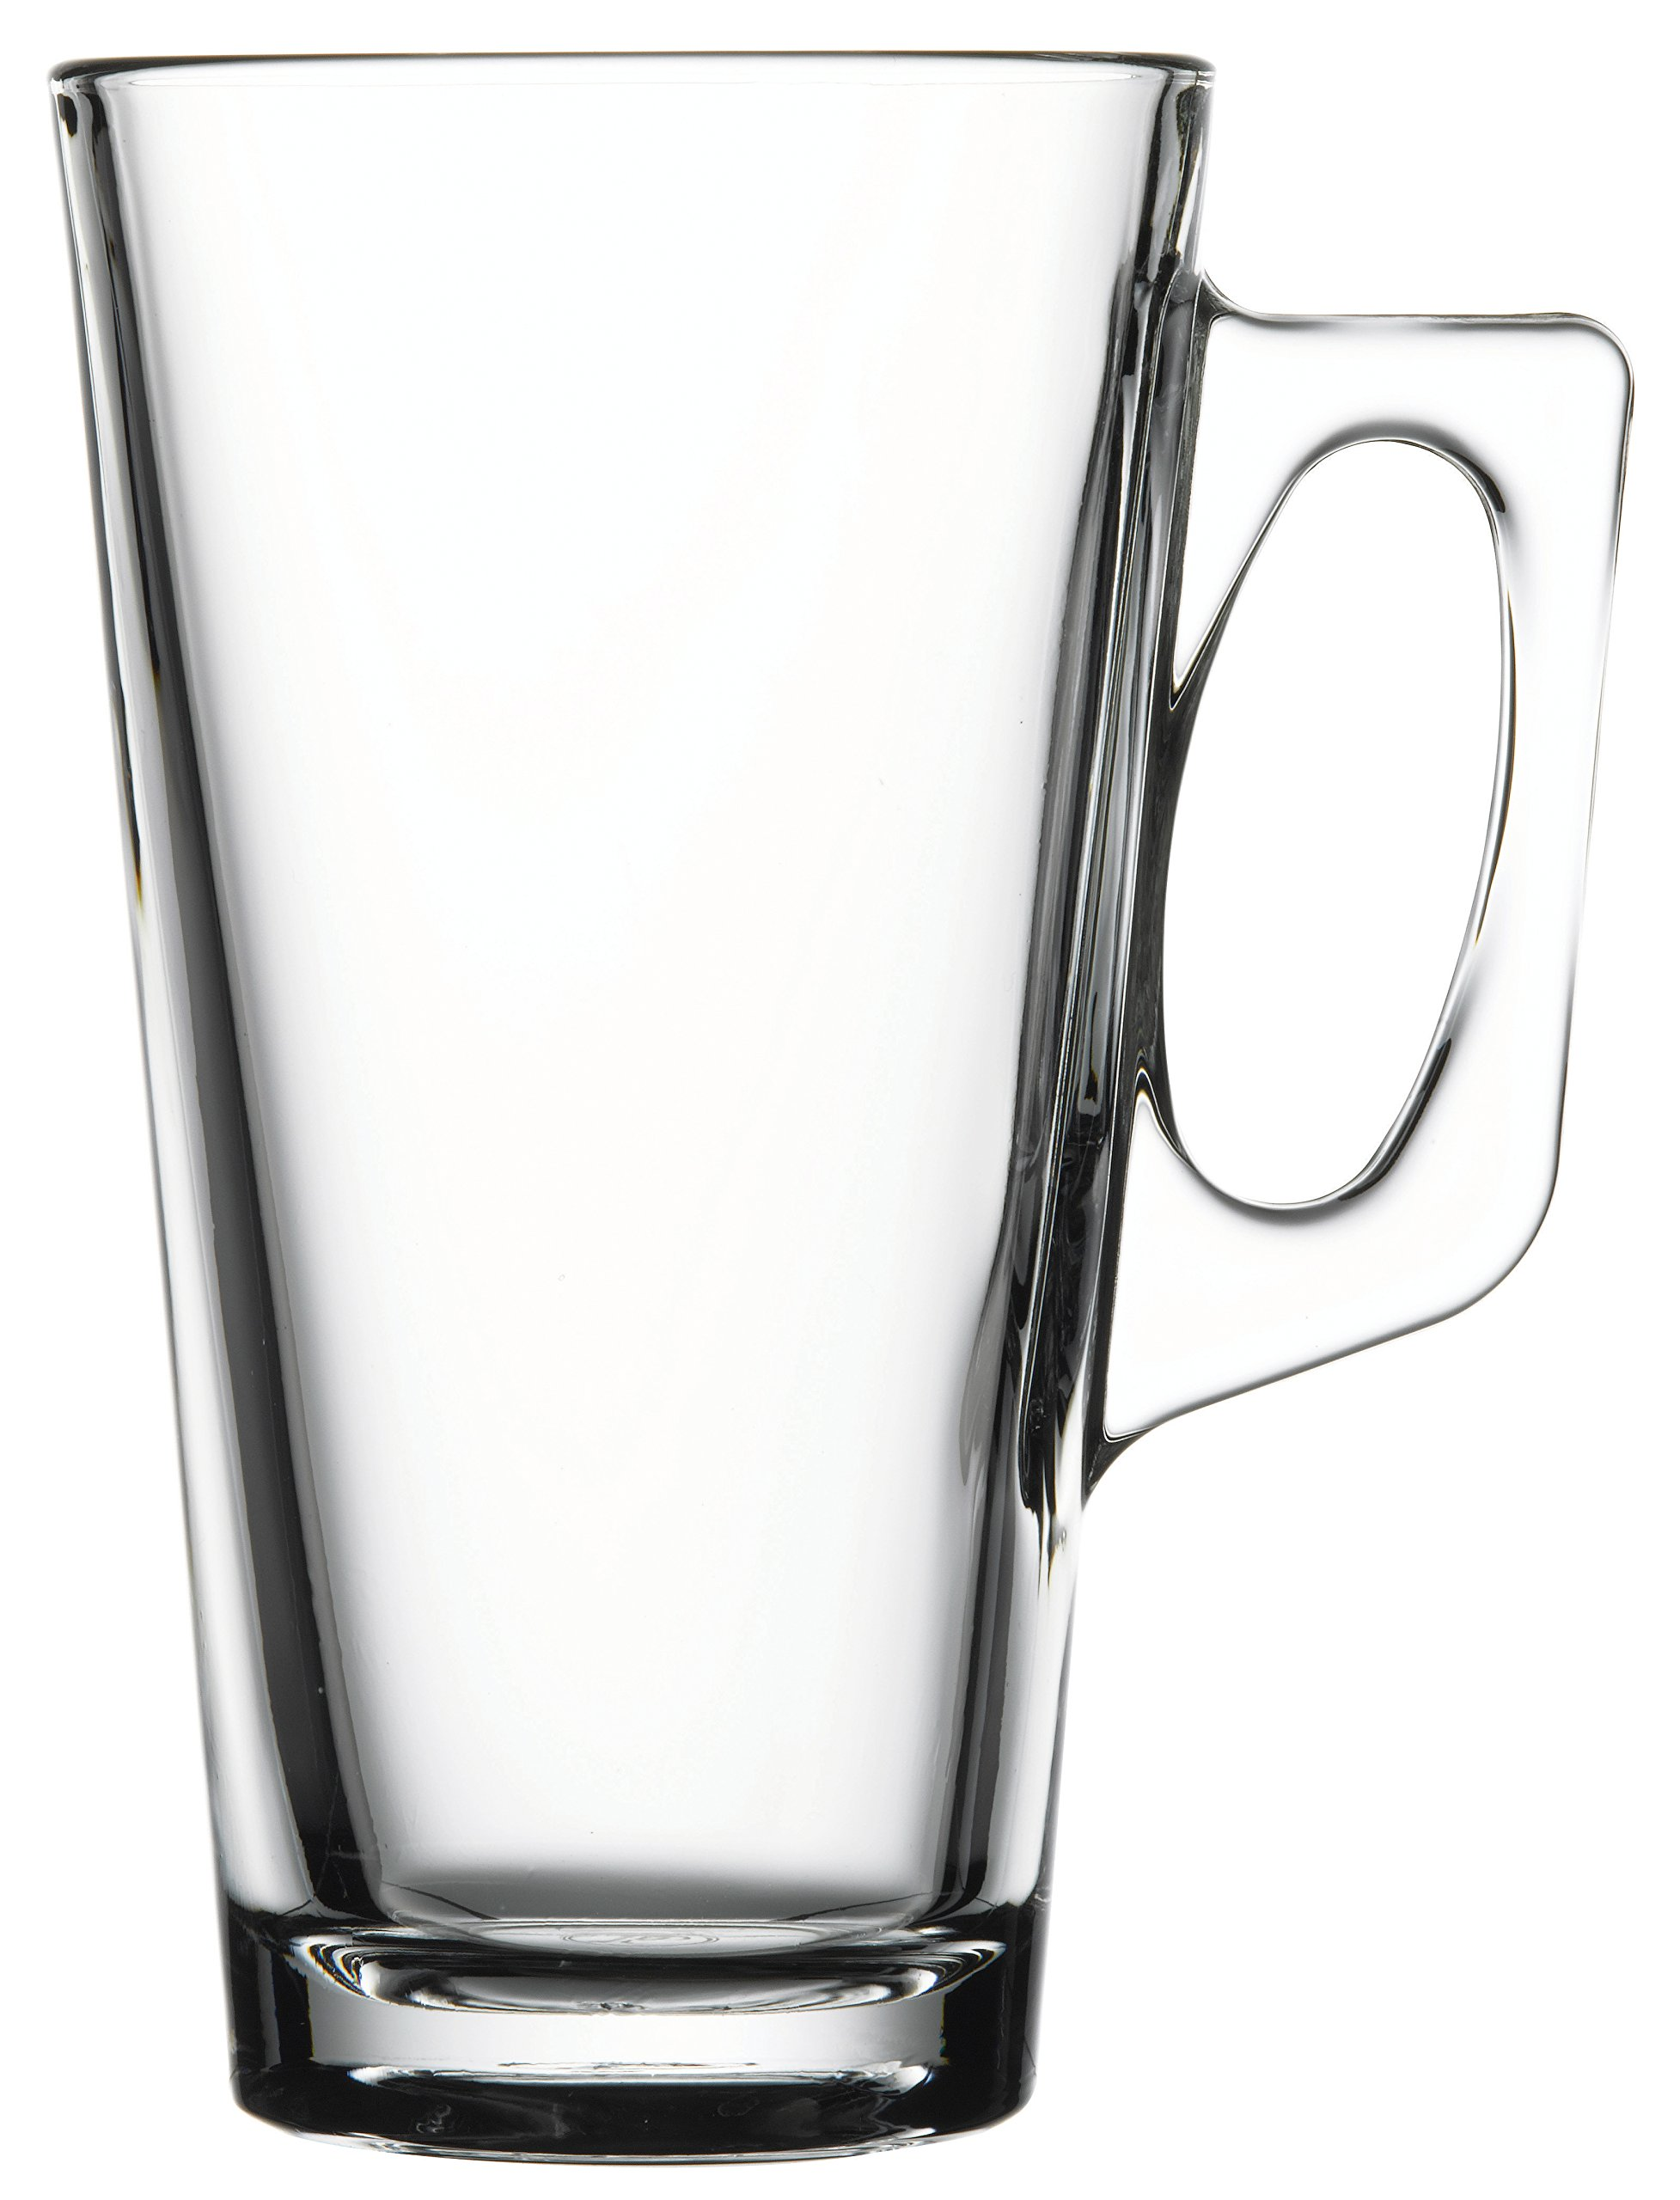 Hospitality Glass Brands 55249-024 Vela Mug, 12.75 oz. (Pack of 24)